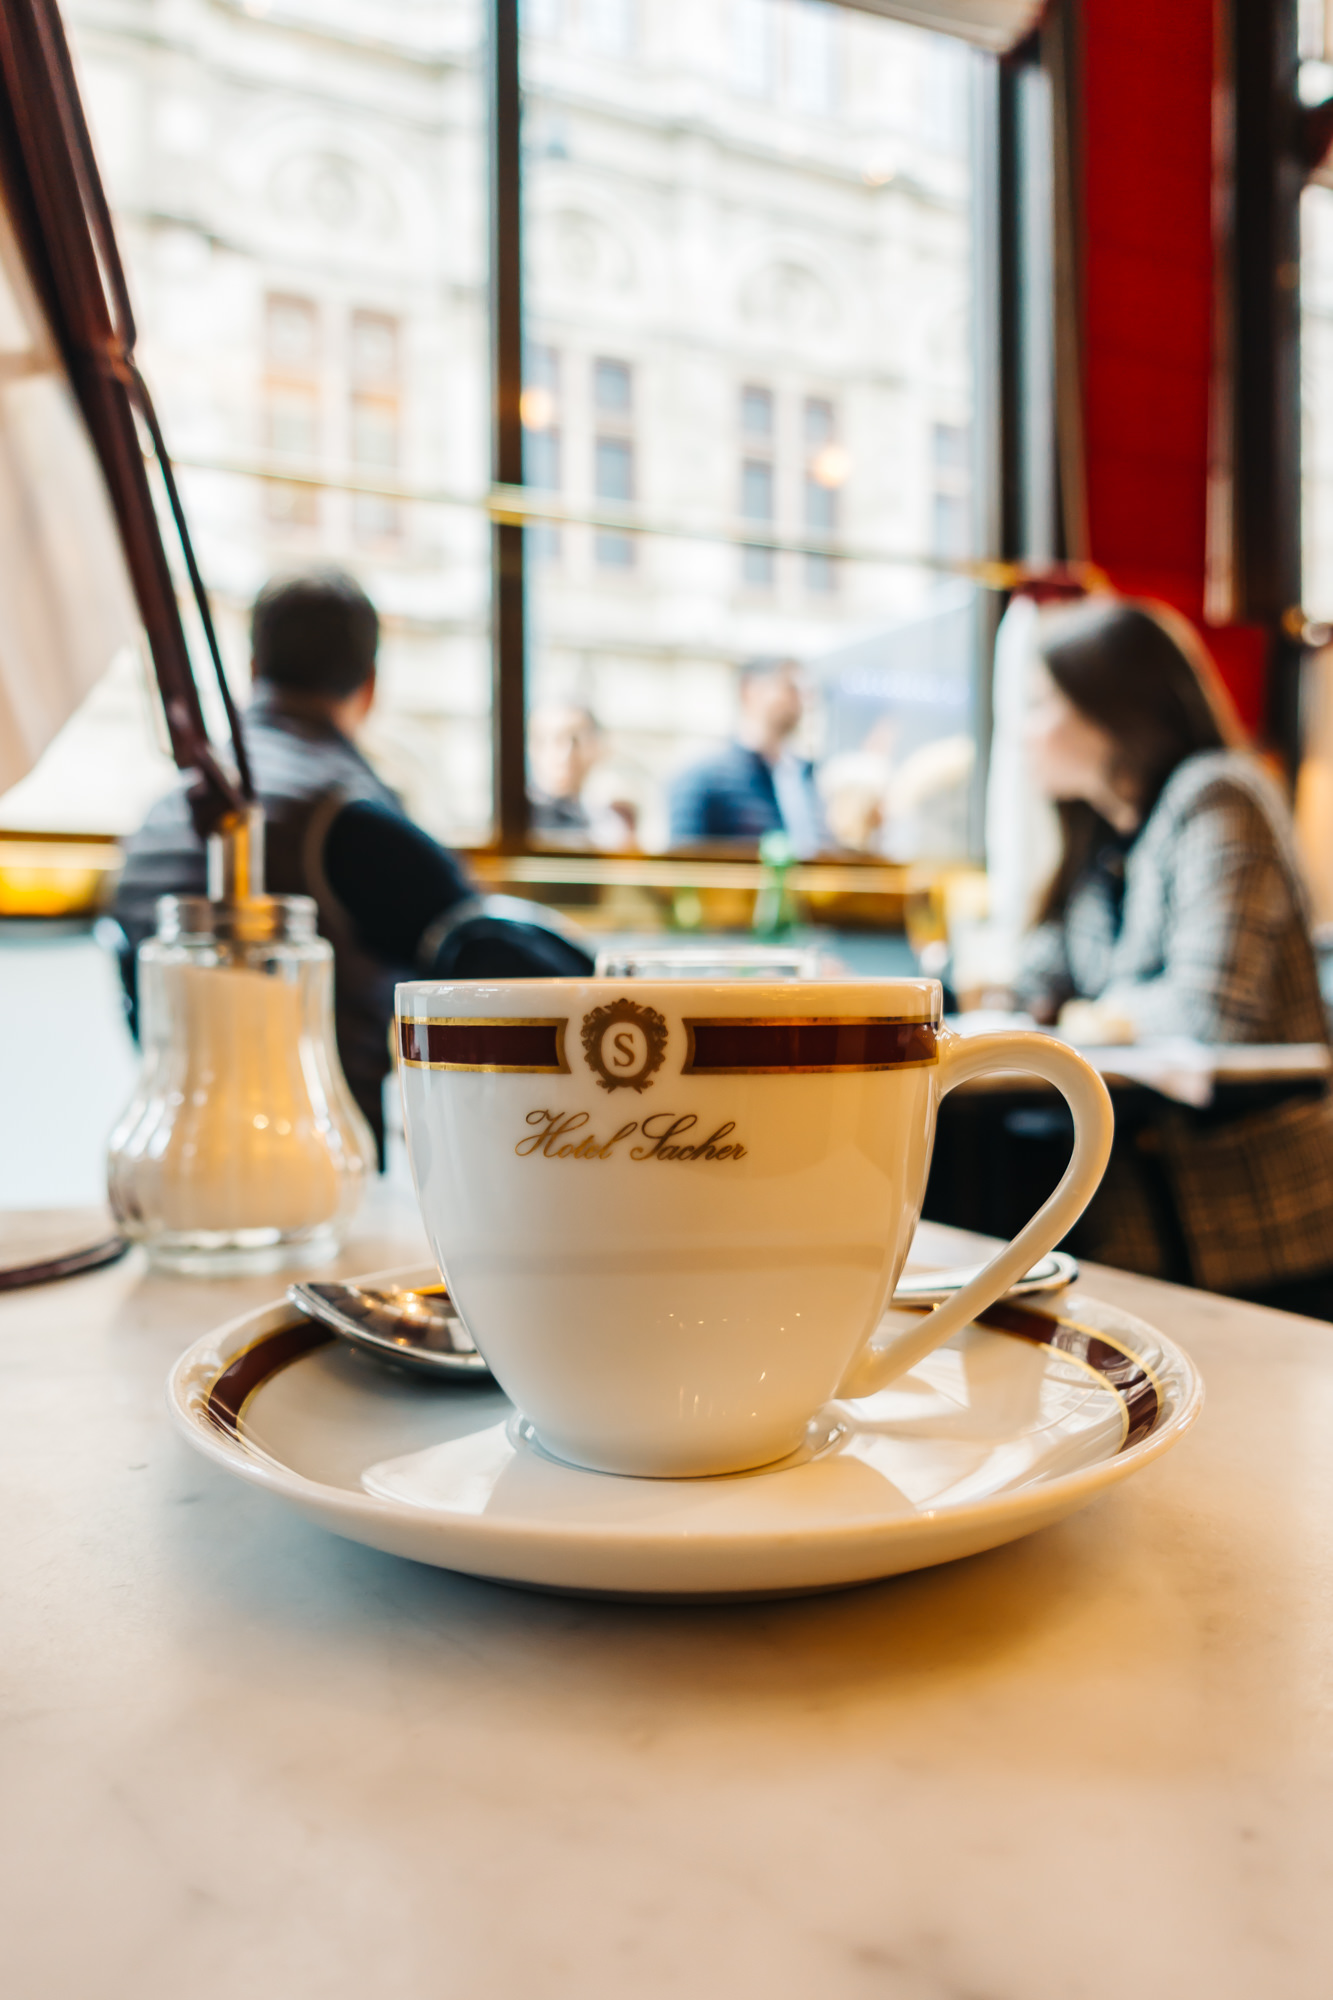 the famous Cafe Sacher at Hotel Sacher in Vienna